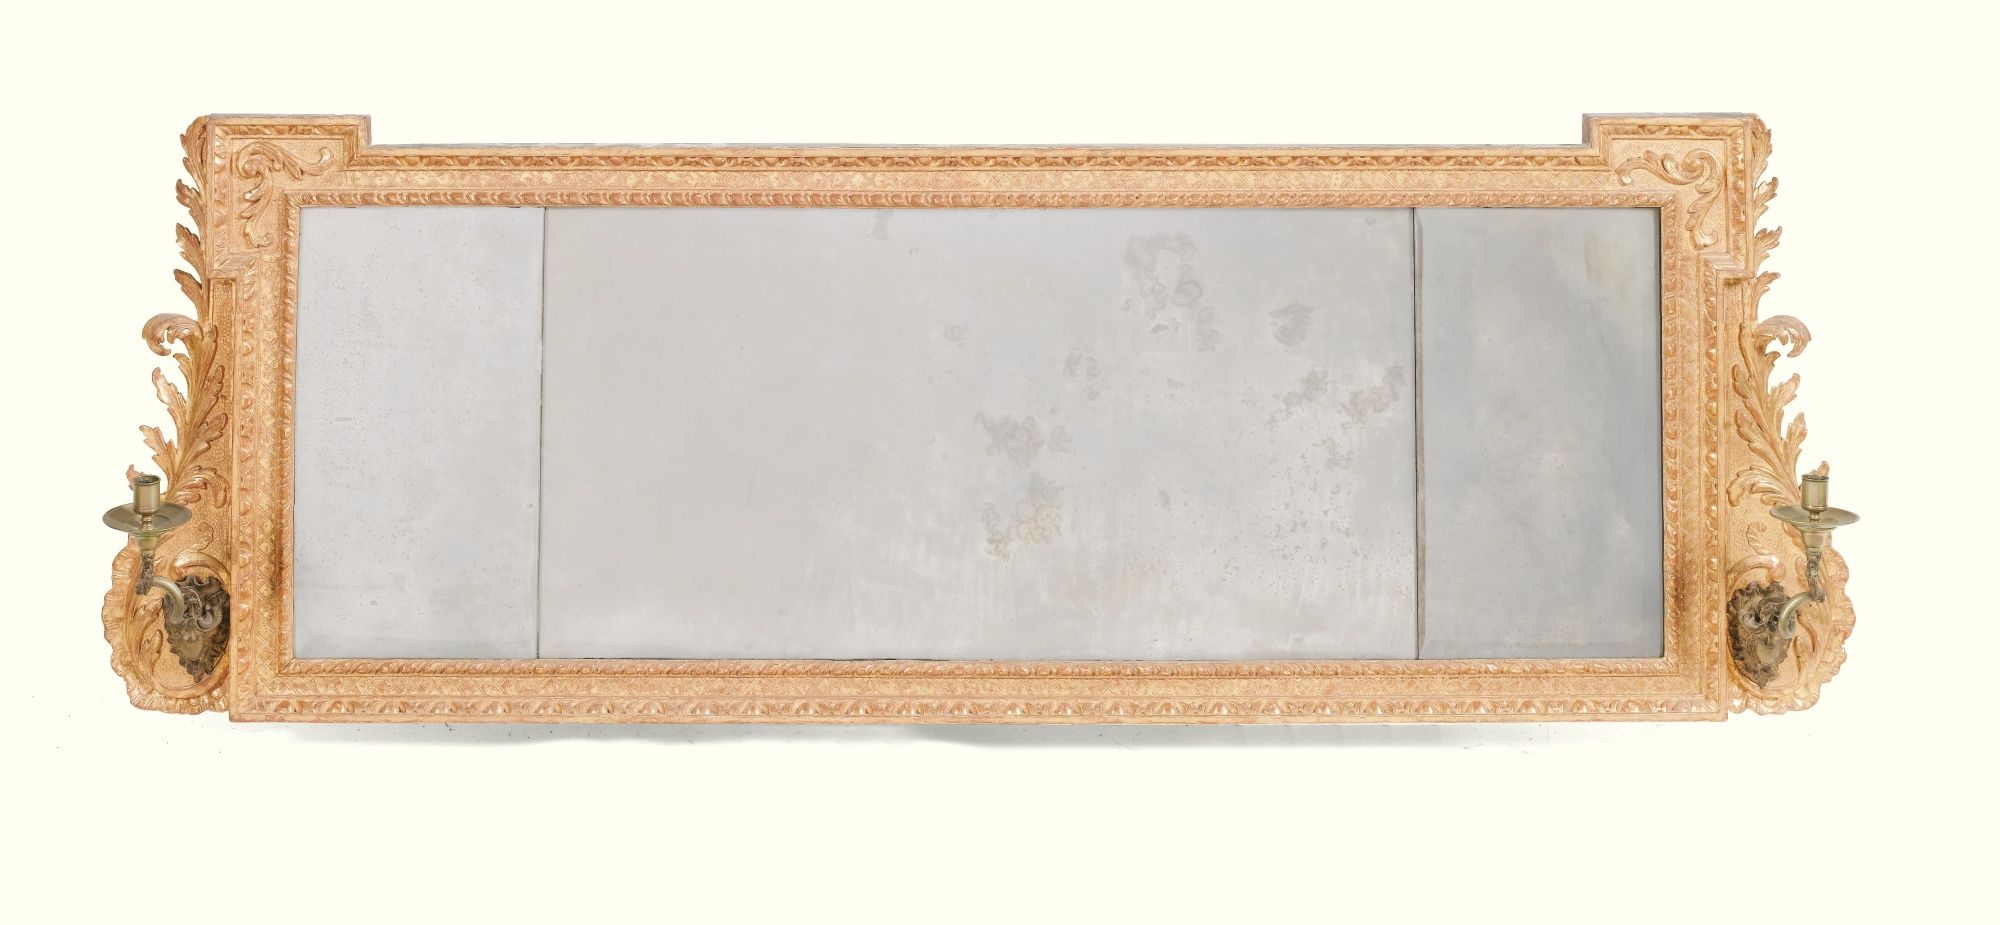 C1740 A George Ii Giltwood Overmantel Mirror Circa 1740 In Modern & Contemporary Beveled Overmantel Mirrors (View 10 of 20)